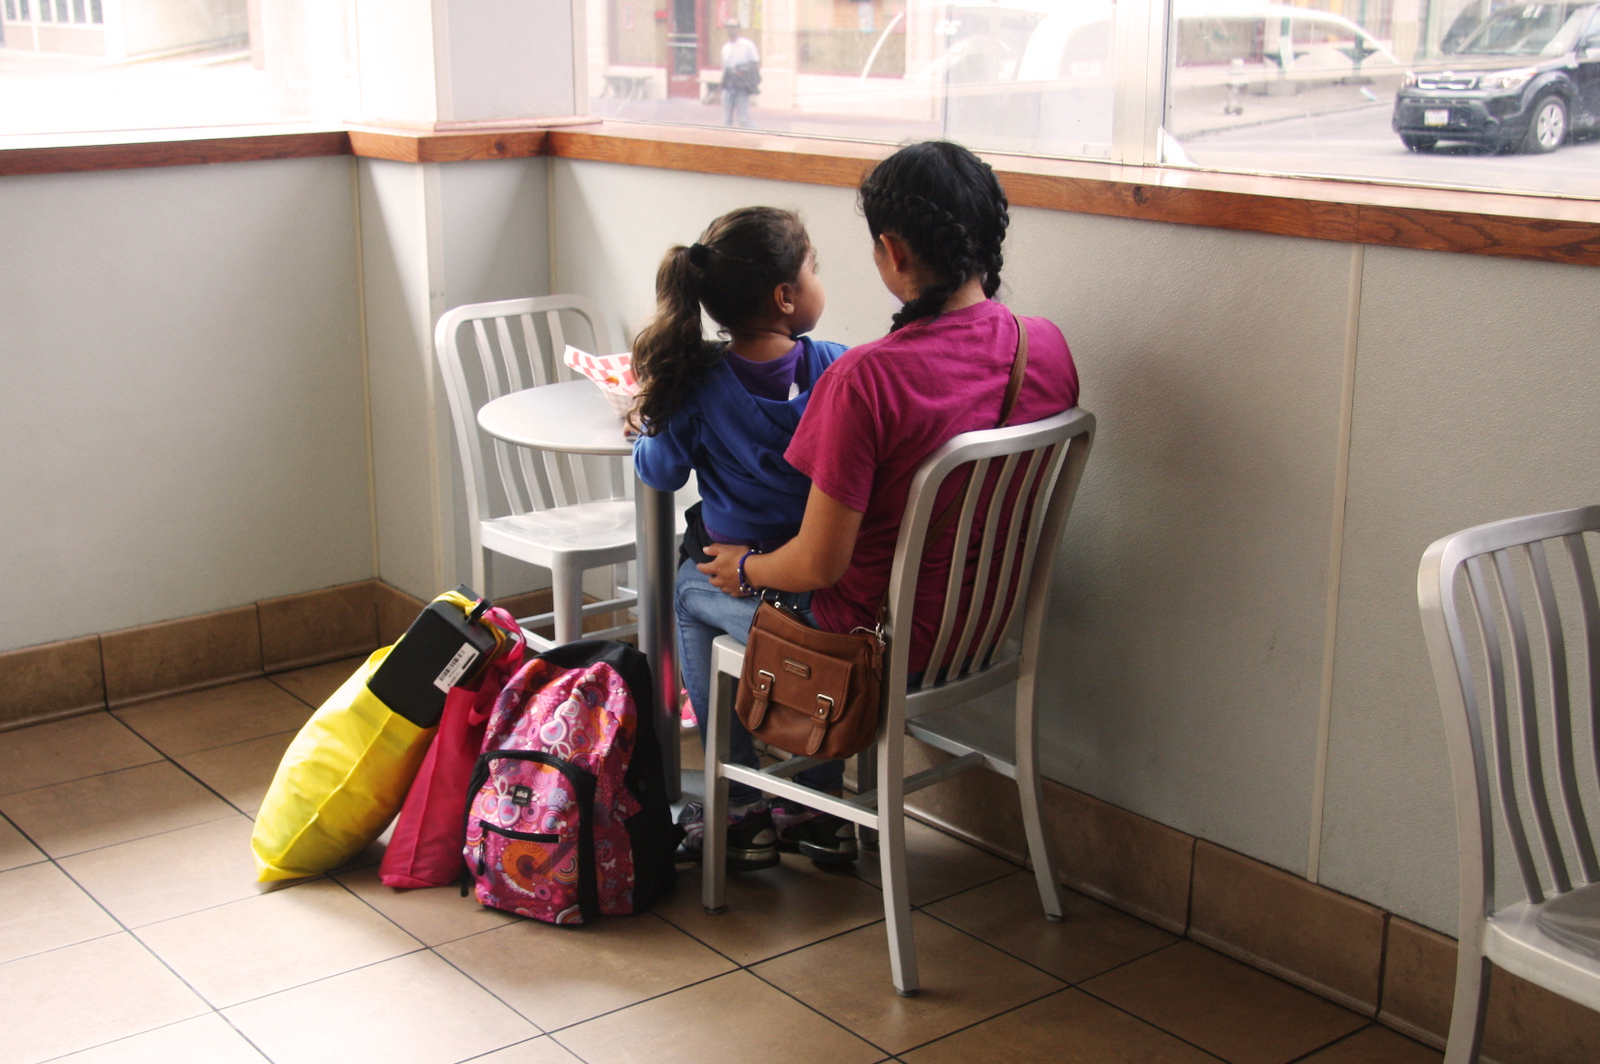 Melissa and daughter Camila (last name not given) await a Greyhound bus to Las Vegas. Benjamin Preston/The Drive